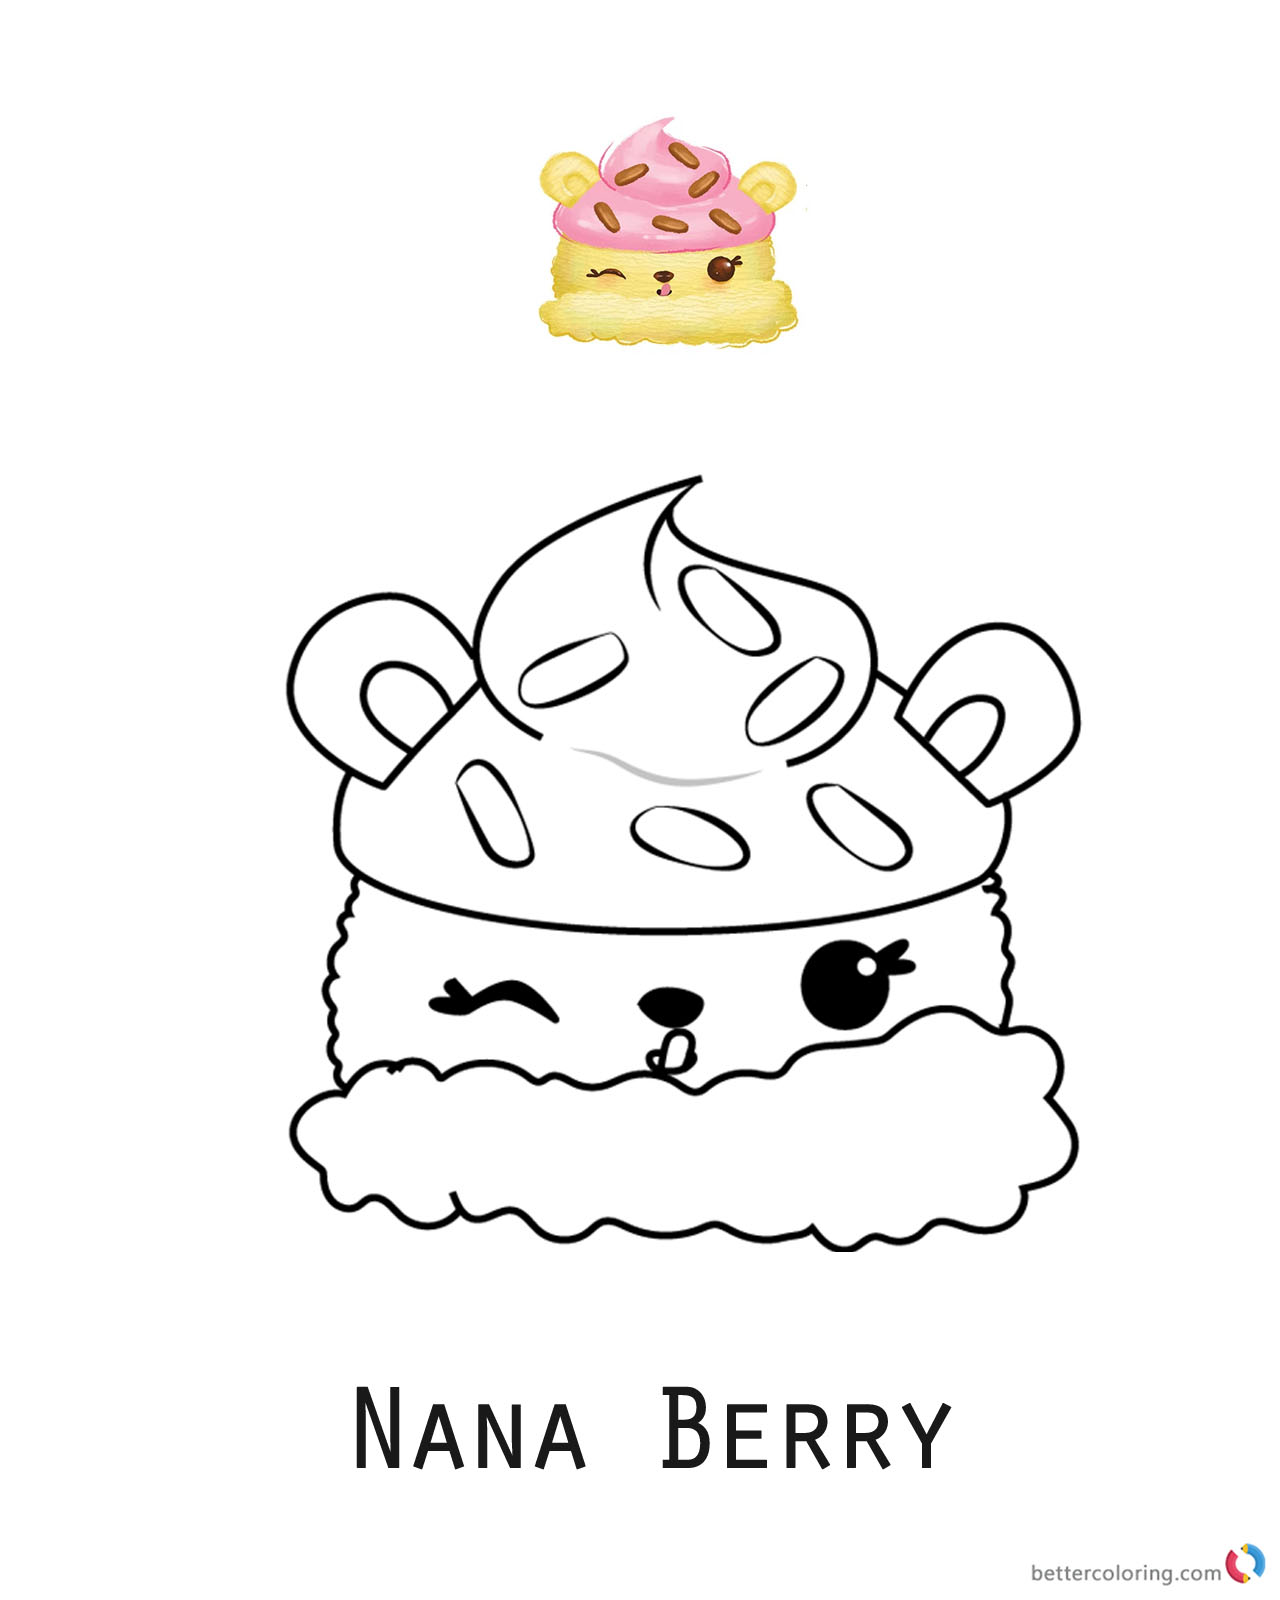 Nana Berry from Num Noms coloring sheet printable